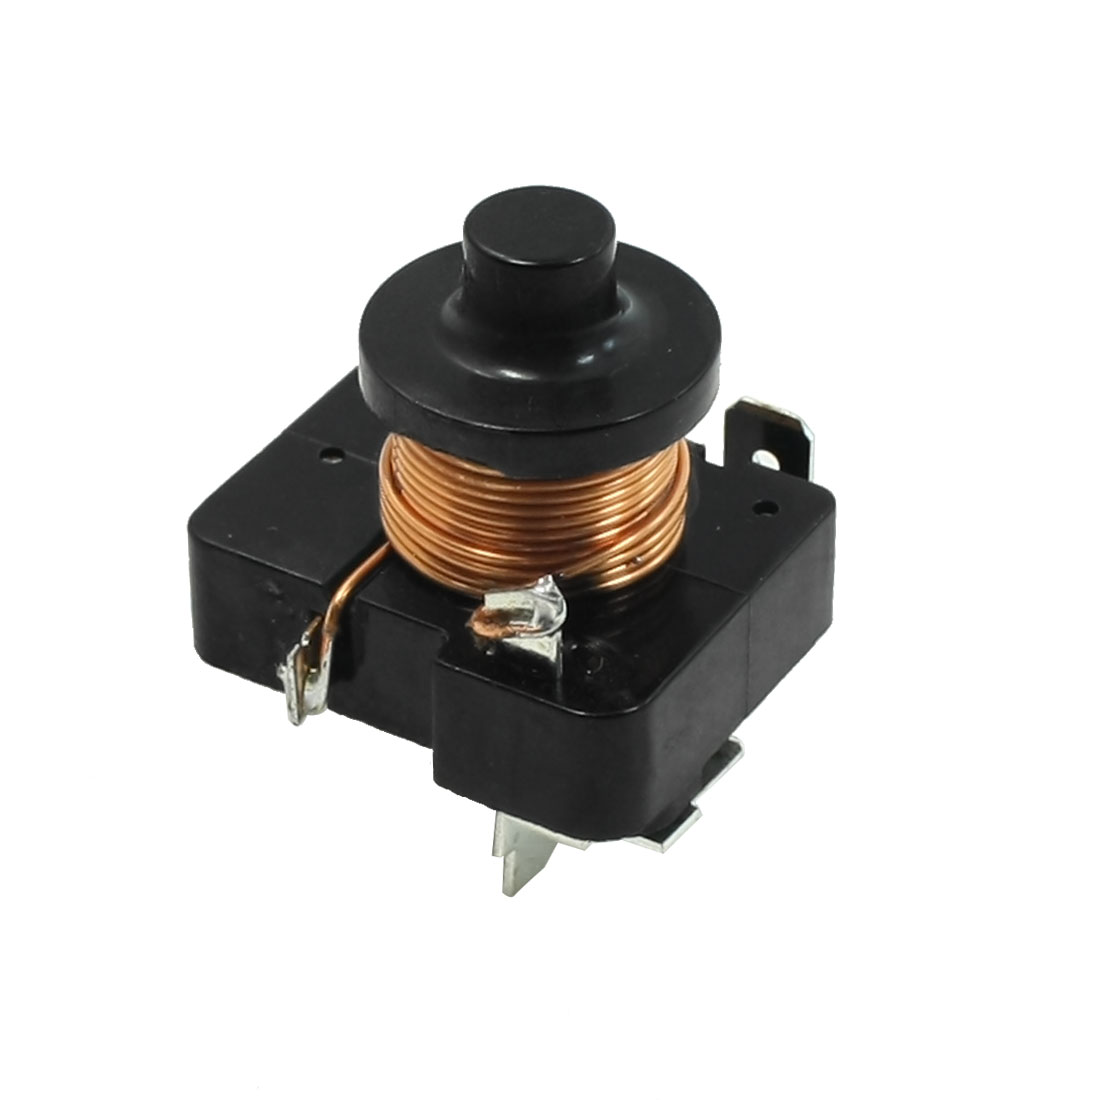 Black Housing Compressor Relay Starter for 3/8 HP Refrigerator